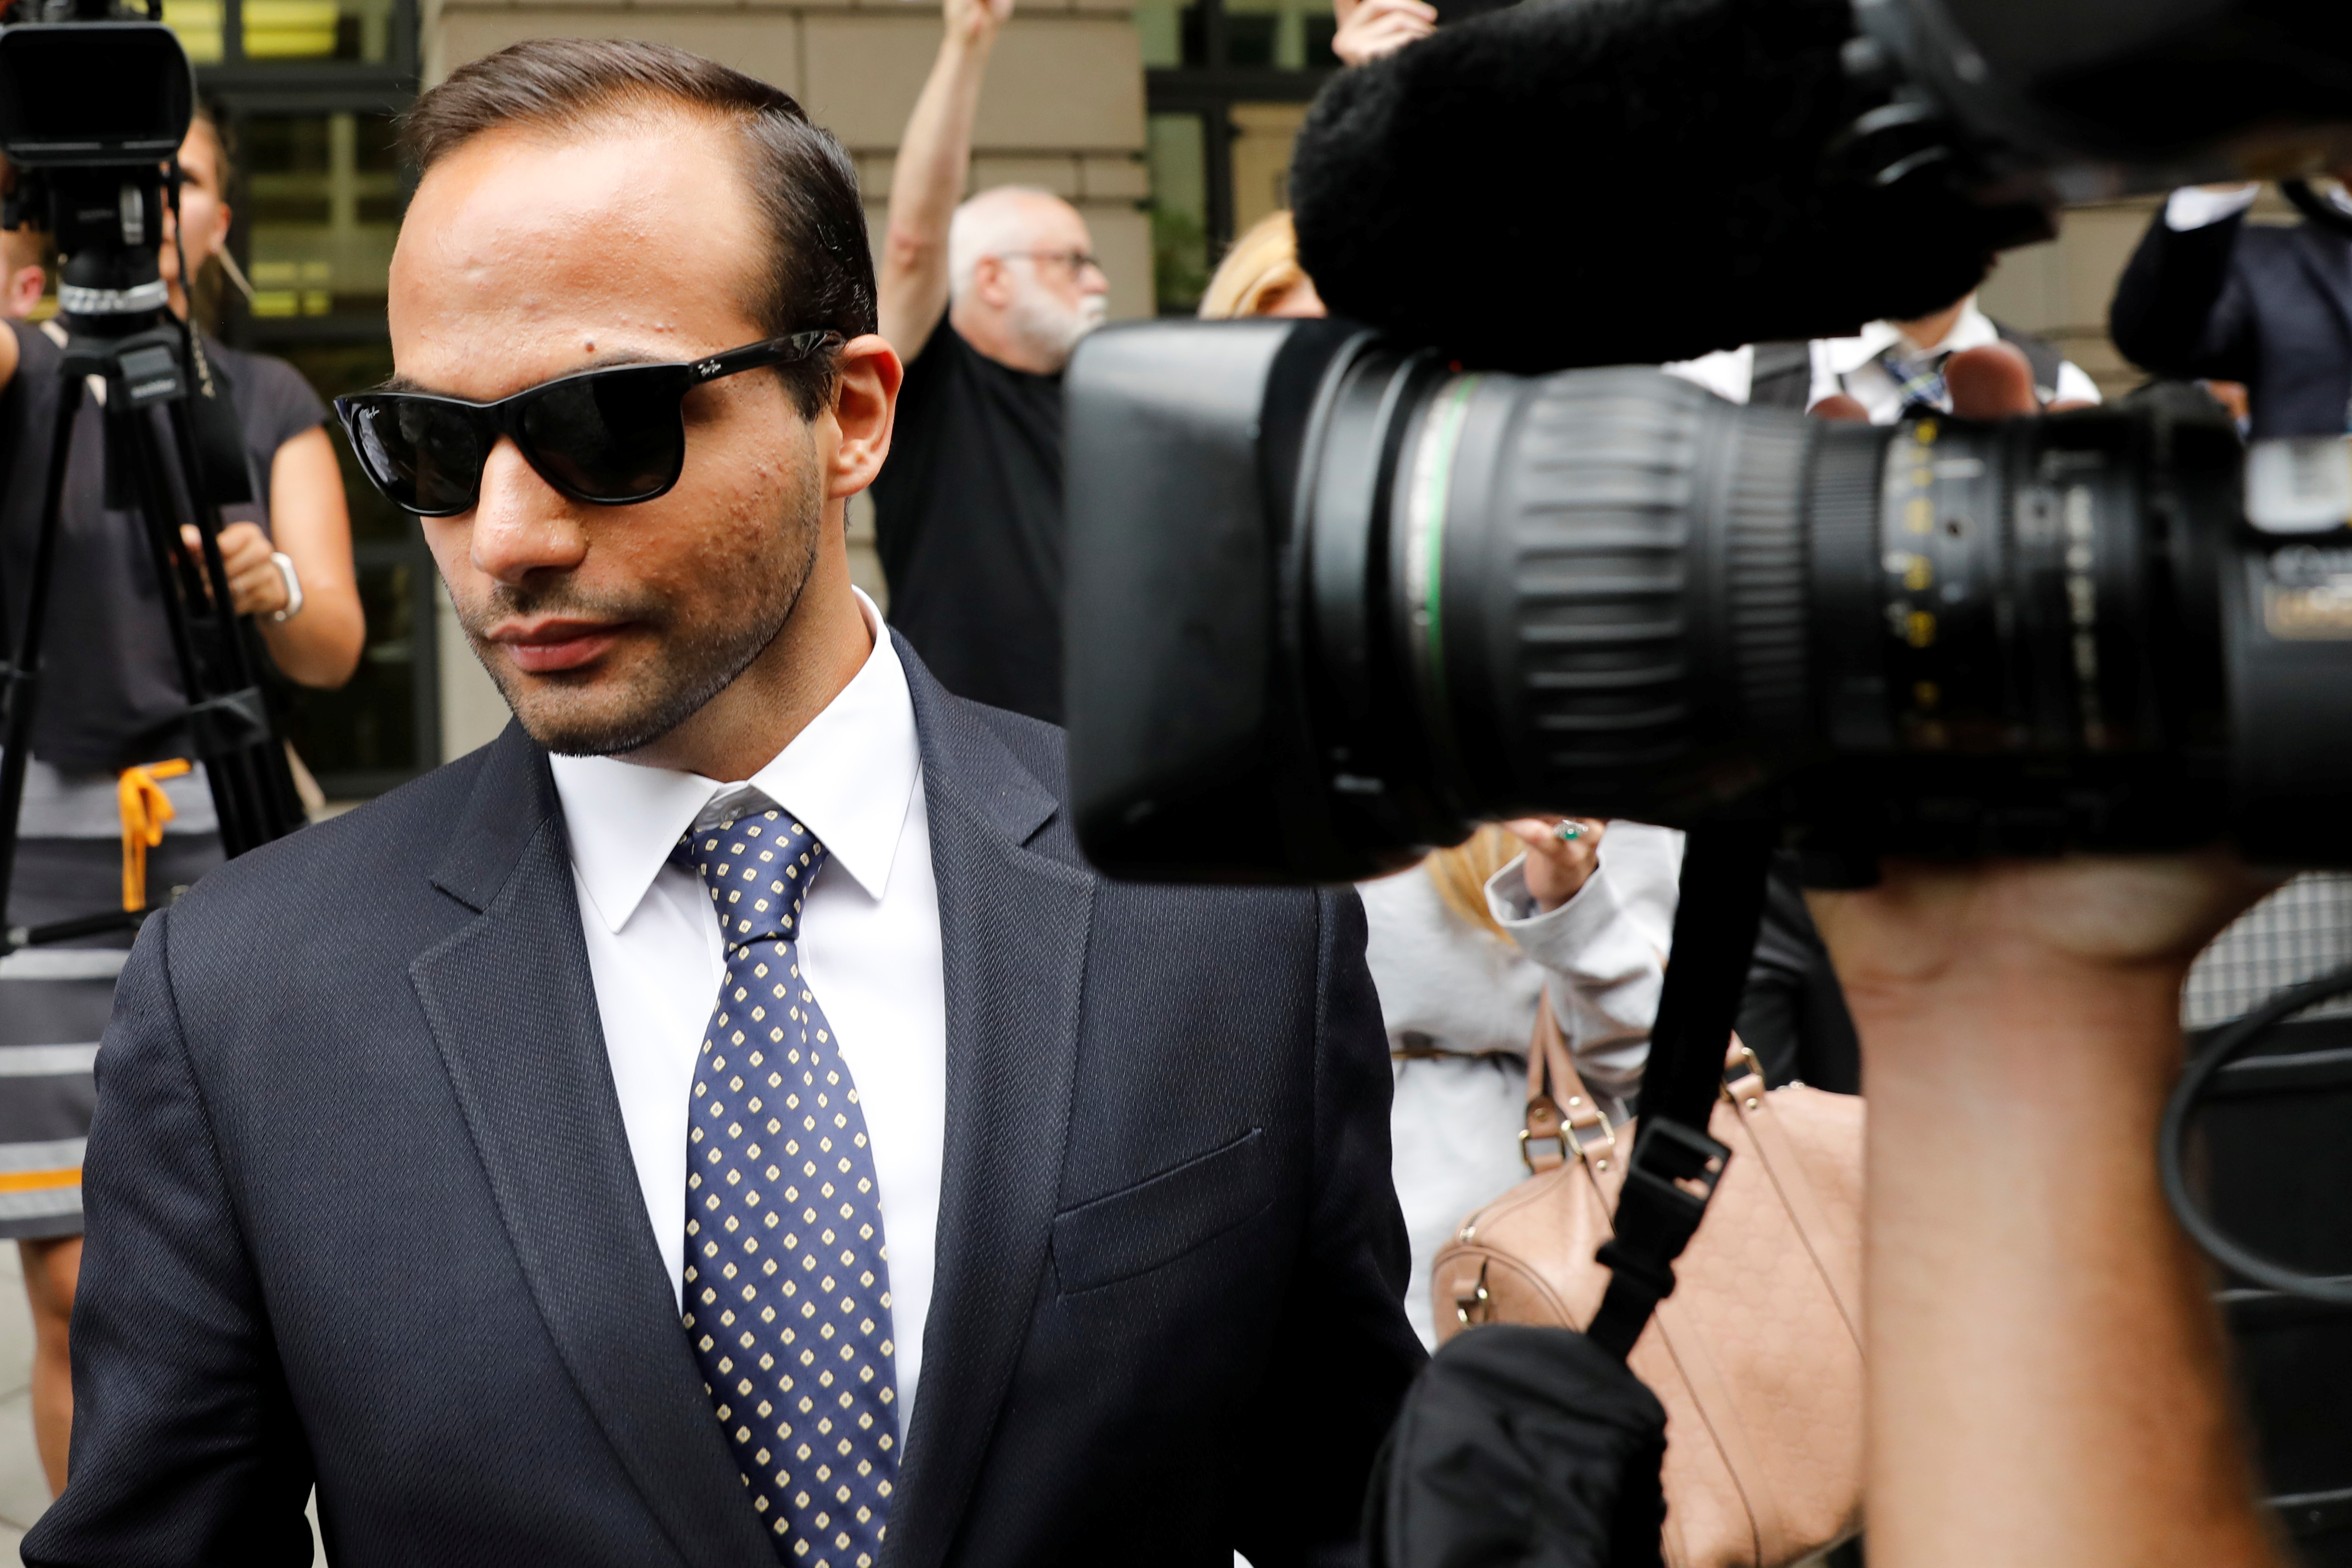 Former Trump campaign aide George Papadopoulos leaves after his sentencing hearing at U.S. District Court in Washington